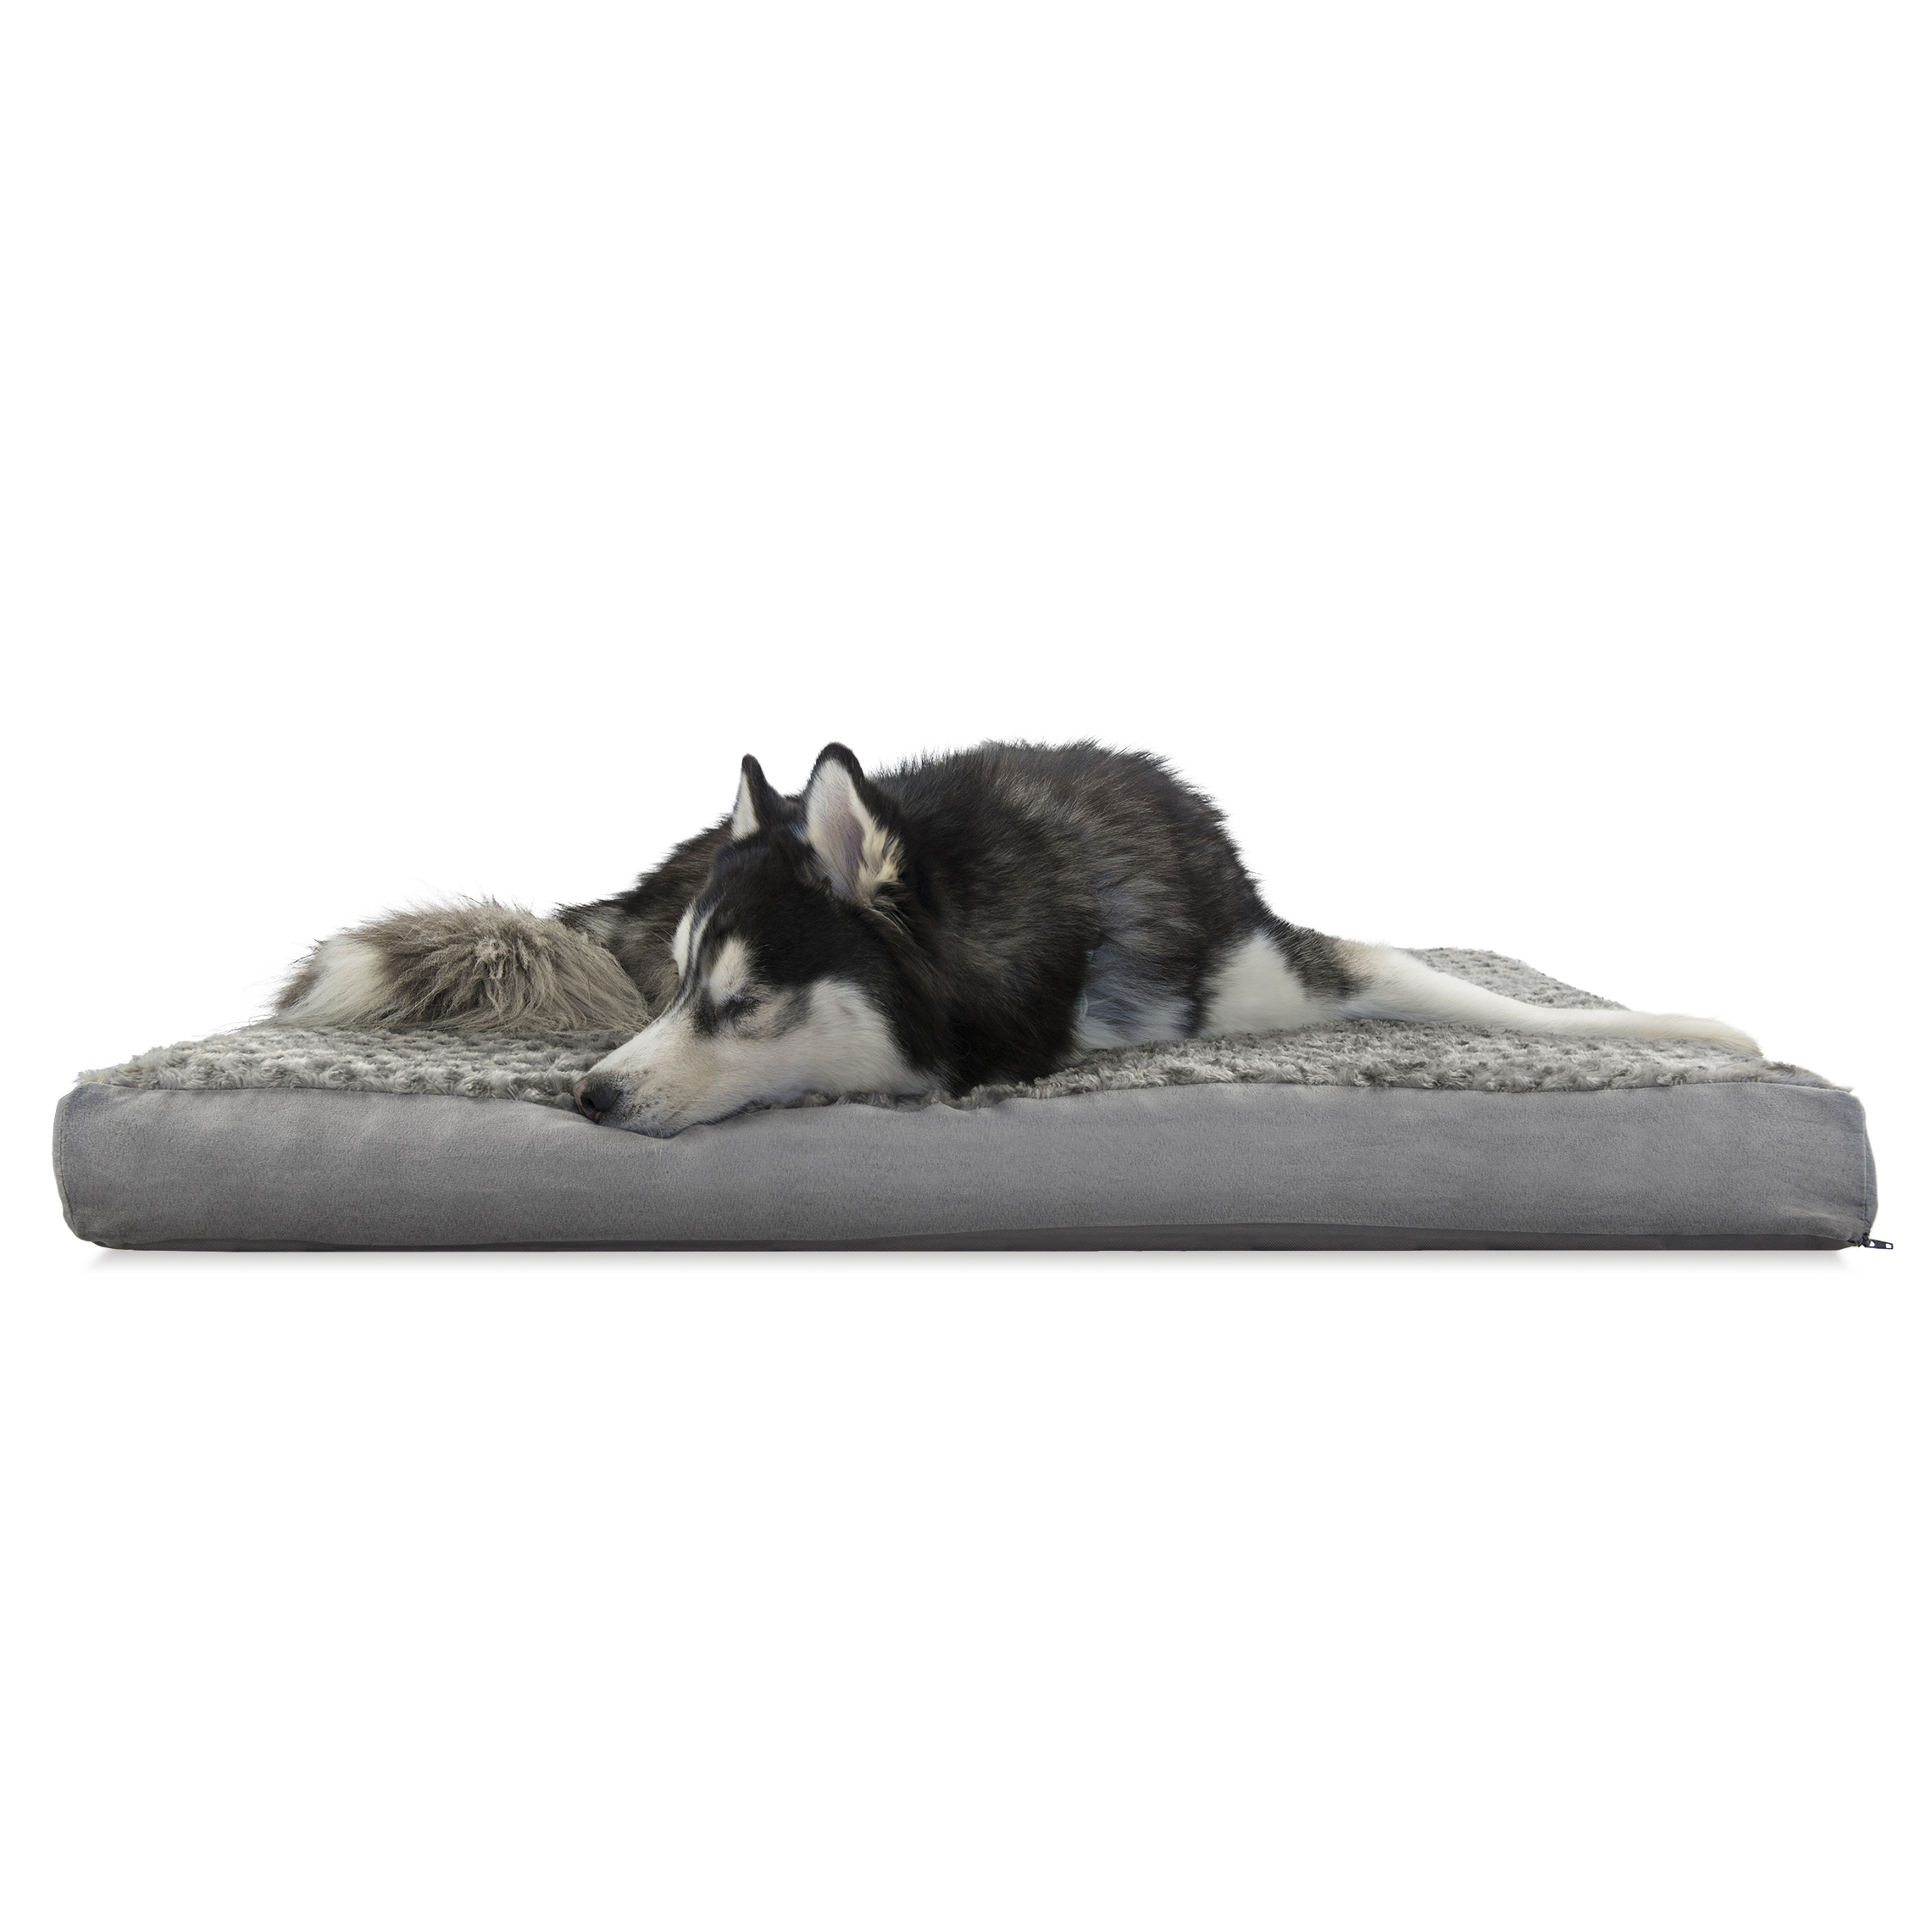 Dog Beds Pet Furhaven Pet Dog Bed Deluxe Cooling Gel Memory Foam Orthopedic Ultra Plush Mattress Pet Bed For Dogs Cats Gray Jumbo